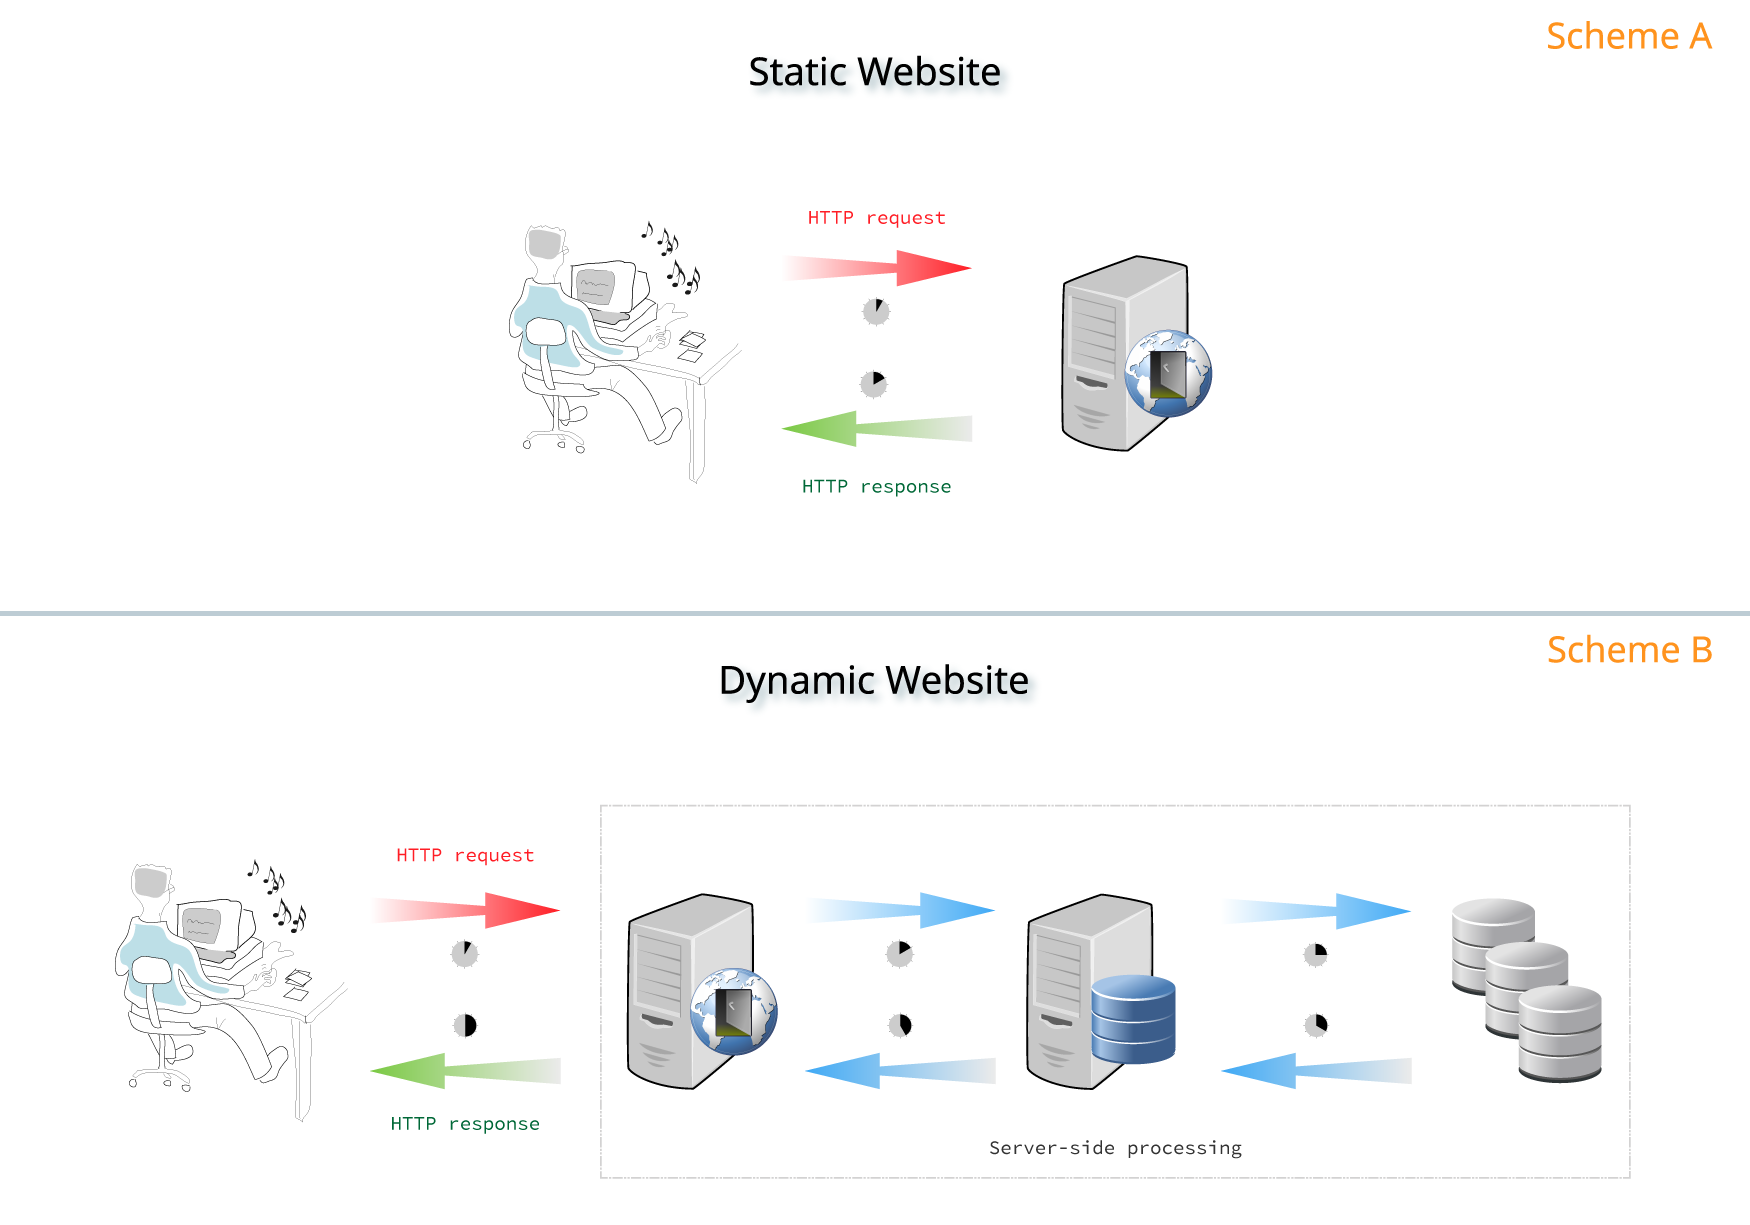 The Differences Between Static and Dynamic Webistes